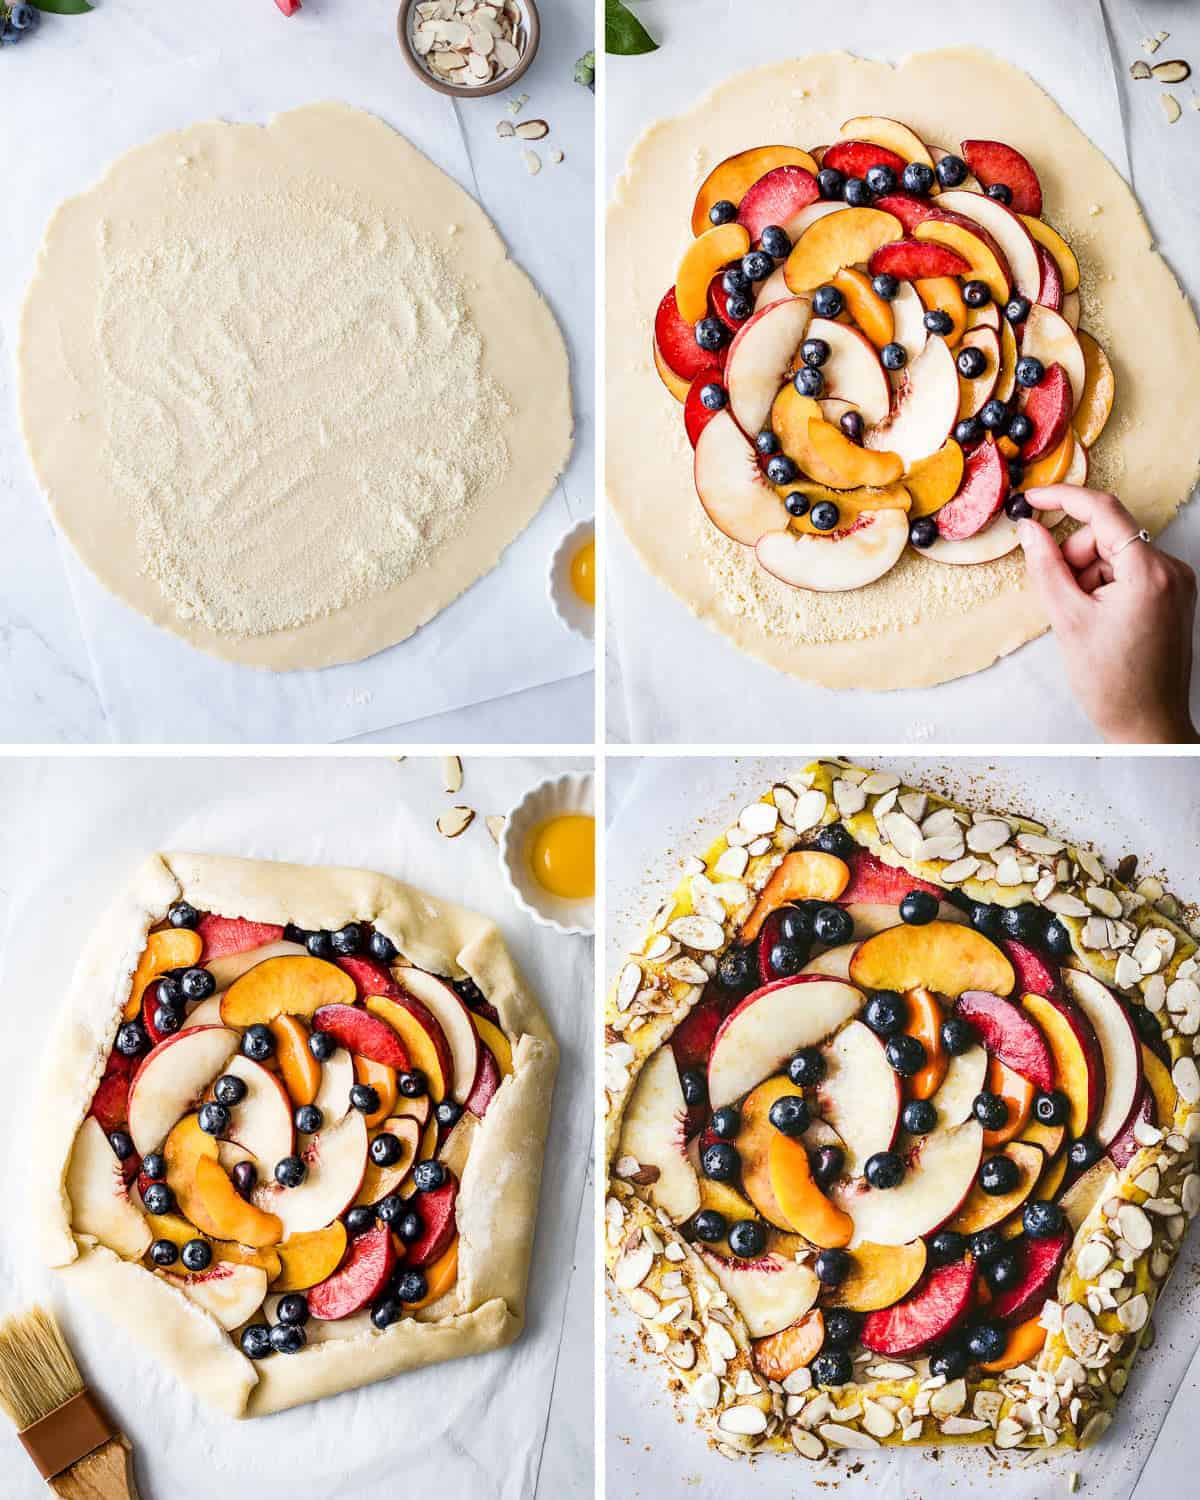 Showing how to make peach blueberry galette with step by step photos